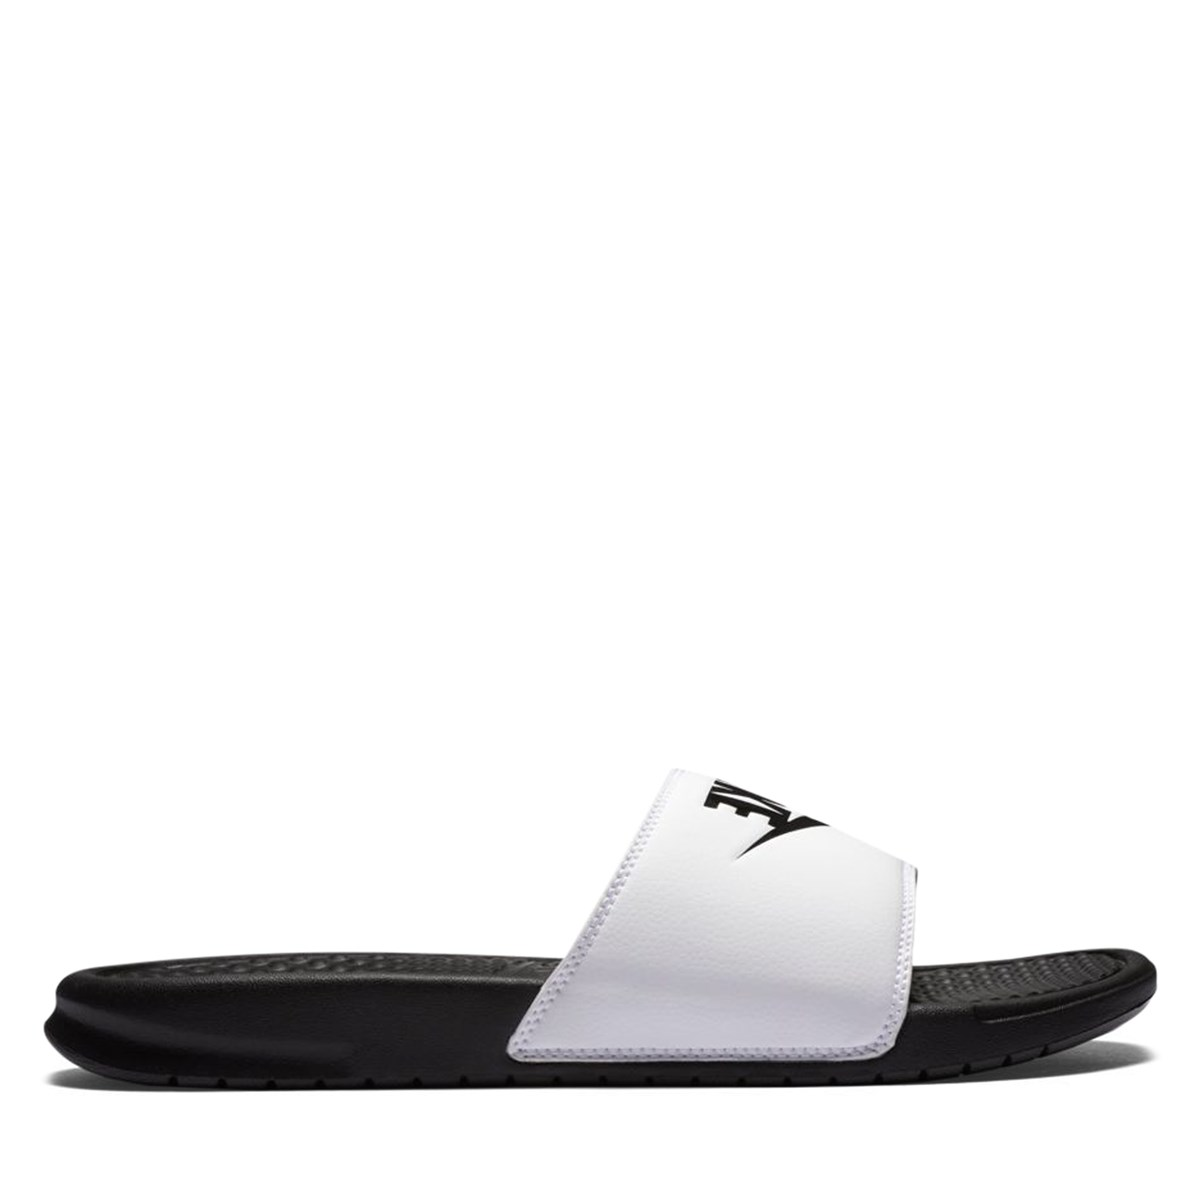 Men's Benassi Slides in White